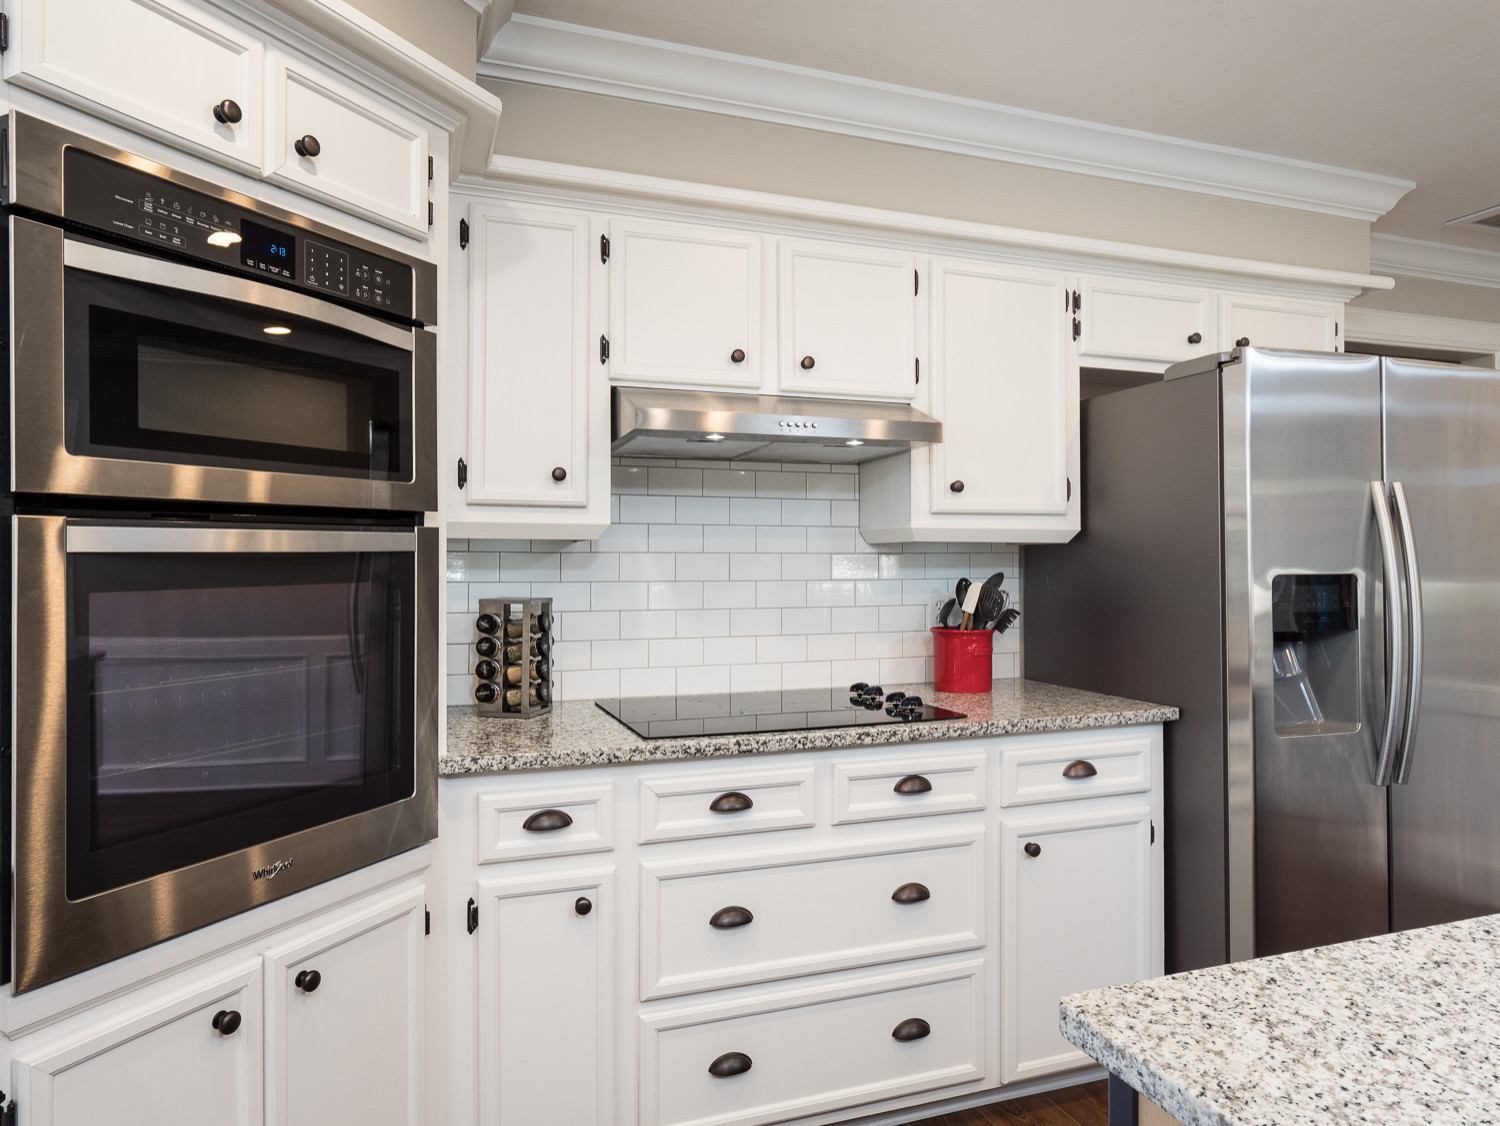 Countryway Kitchen Remodel